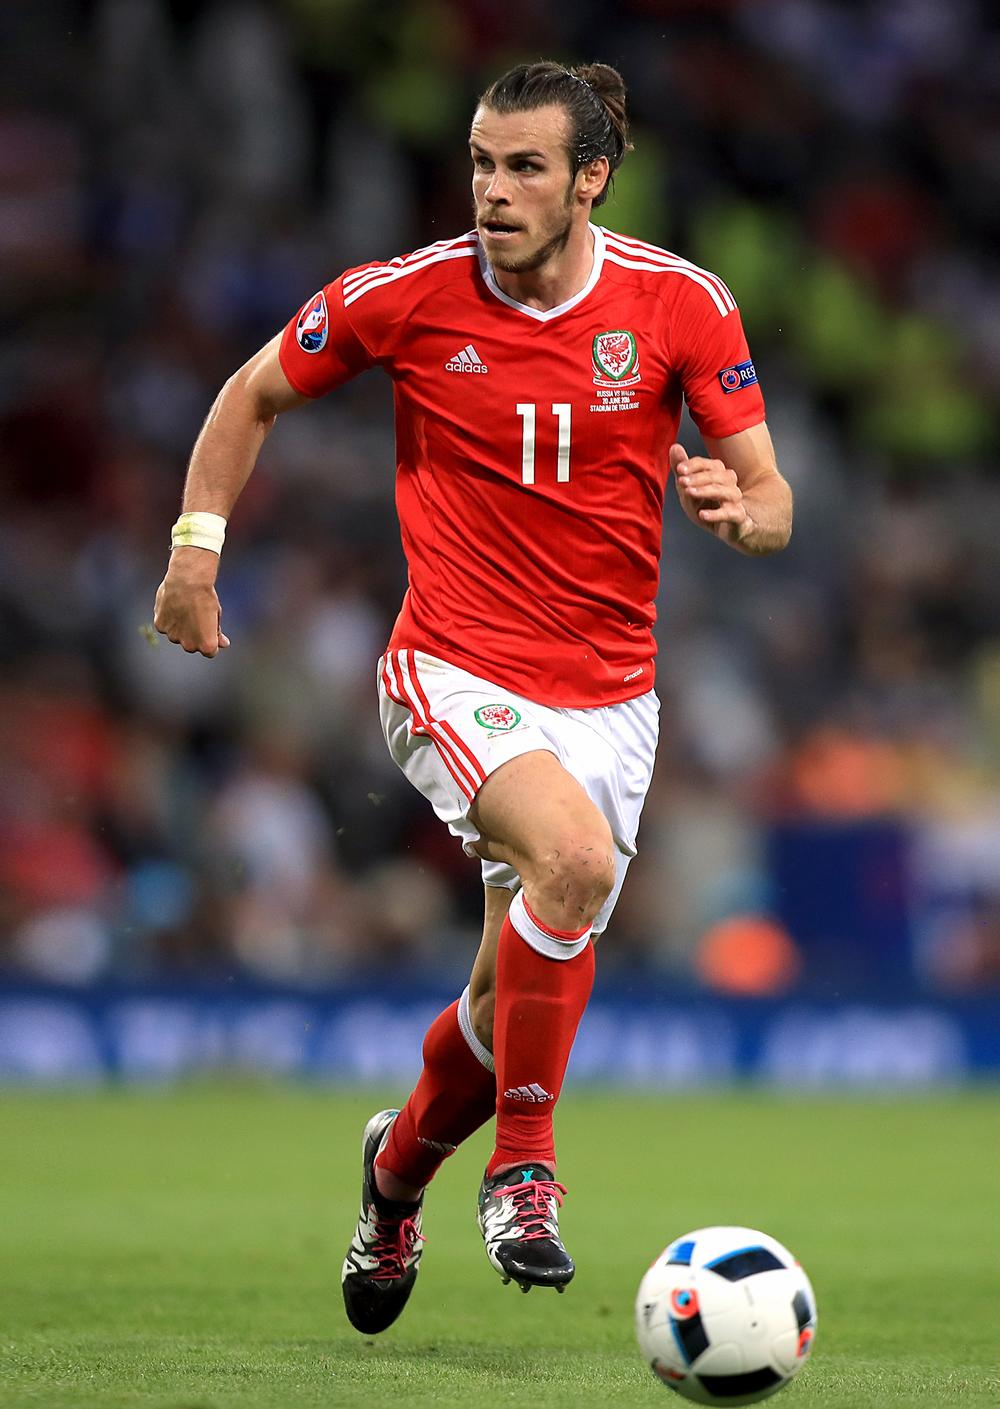 Cover star: Footballer Gareth Bale's electric performances at the Euro 2016 tournament has made him a national hero – and could inspire more children to take up sport / Mike egerton / press association iamges